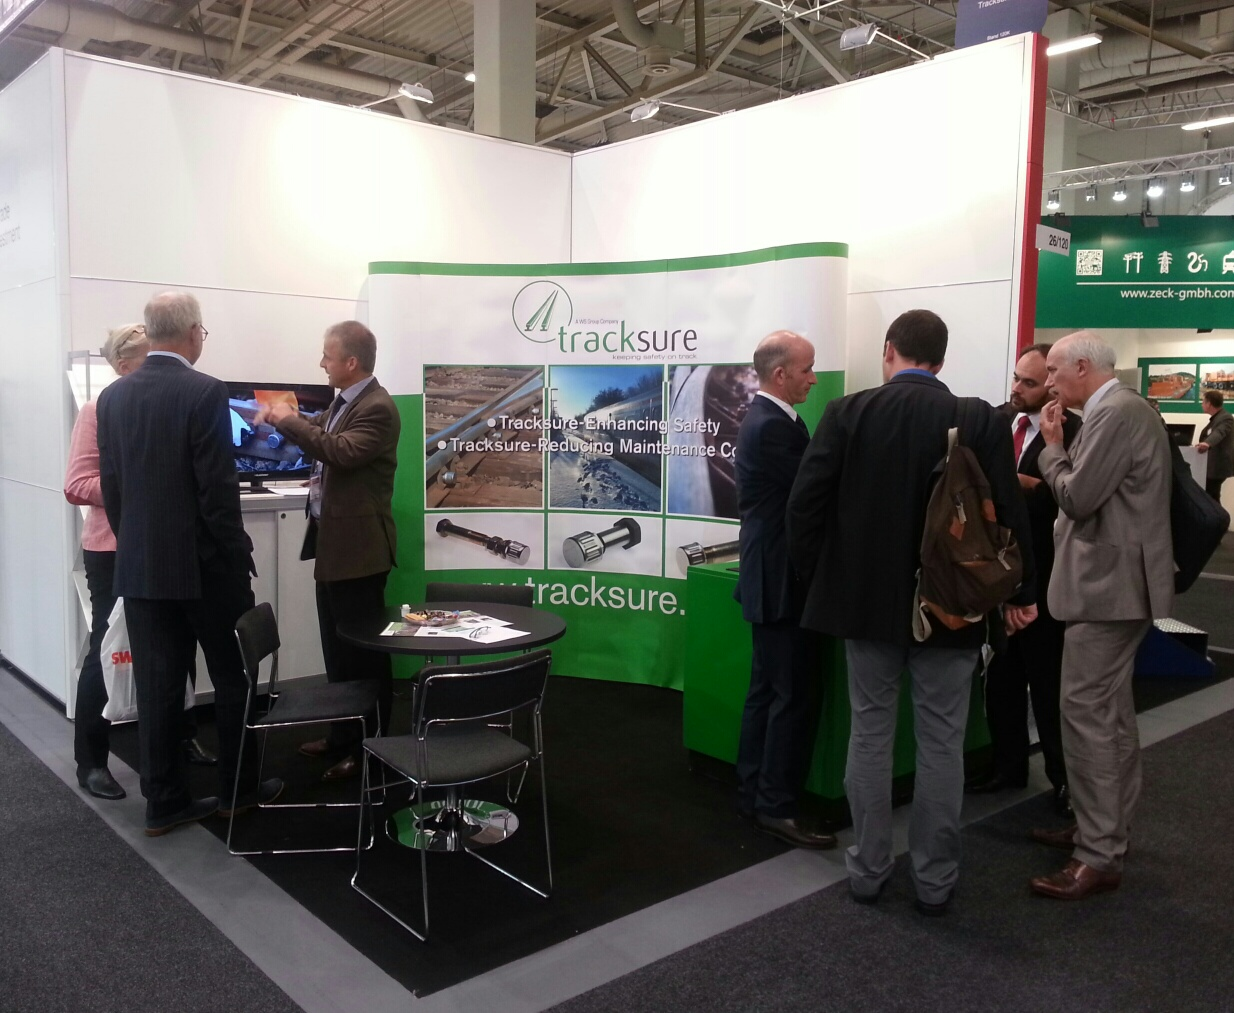 Tracksure at the Innotrans exhibition, Berlin 2016